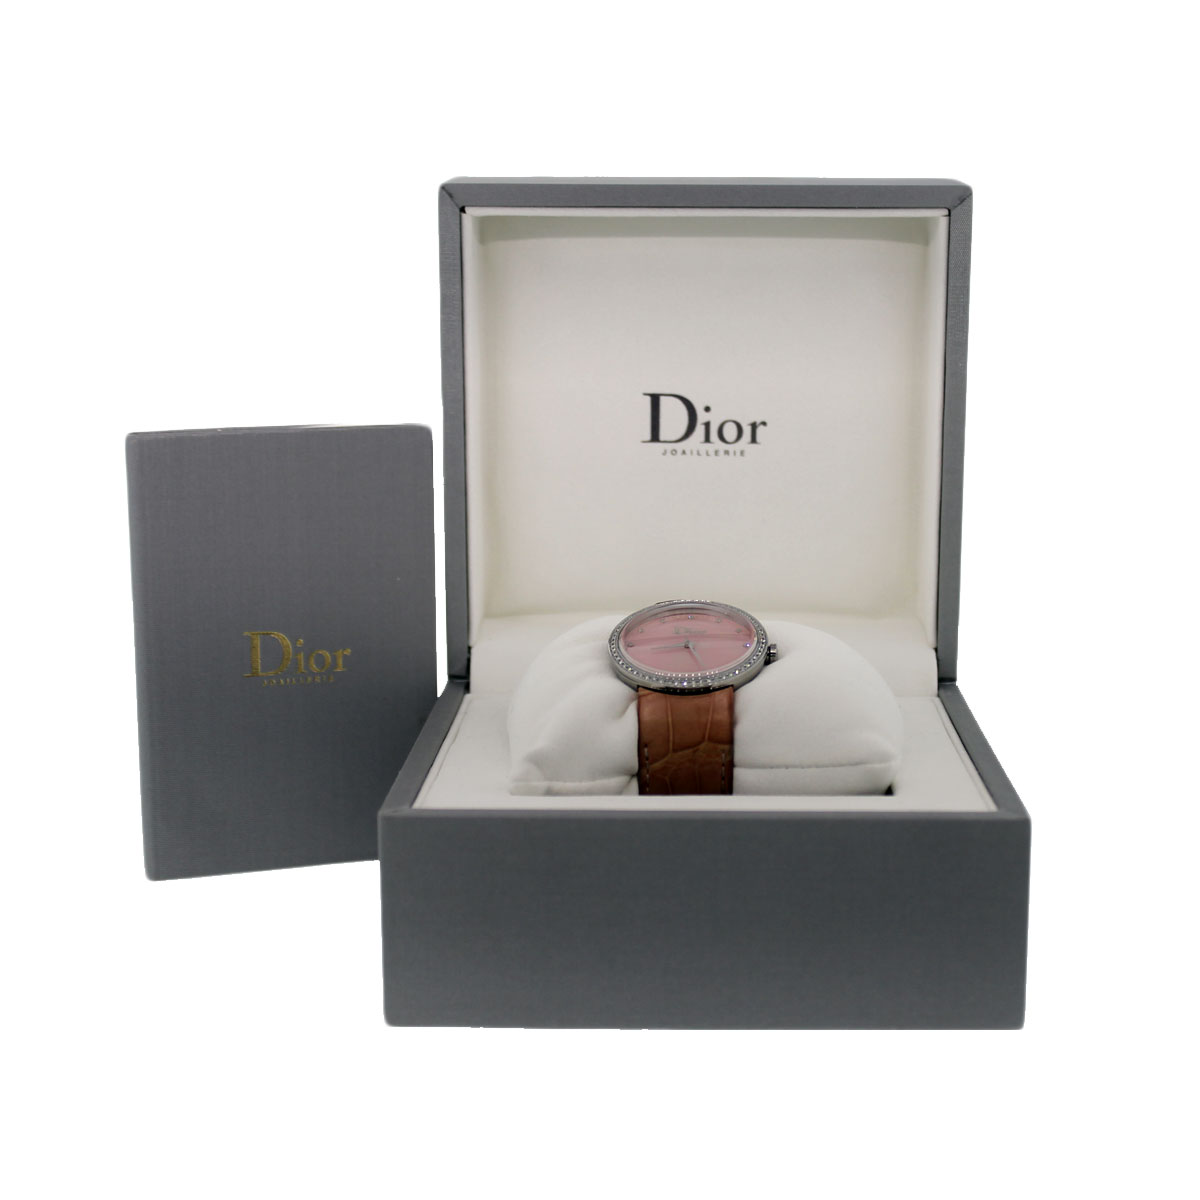 Dior Box and Papers